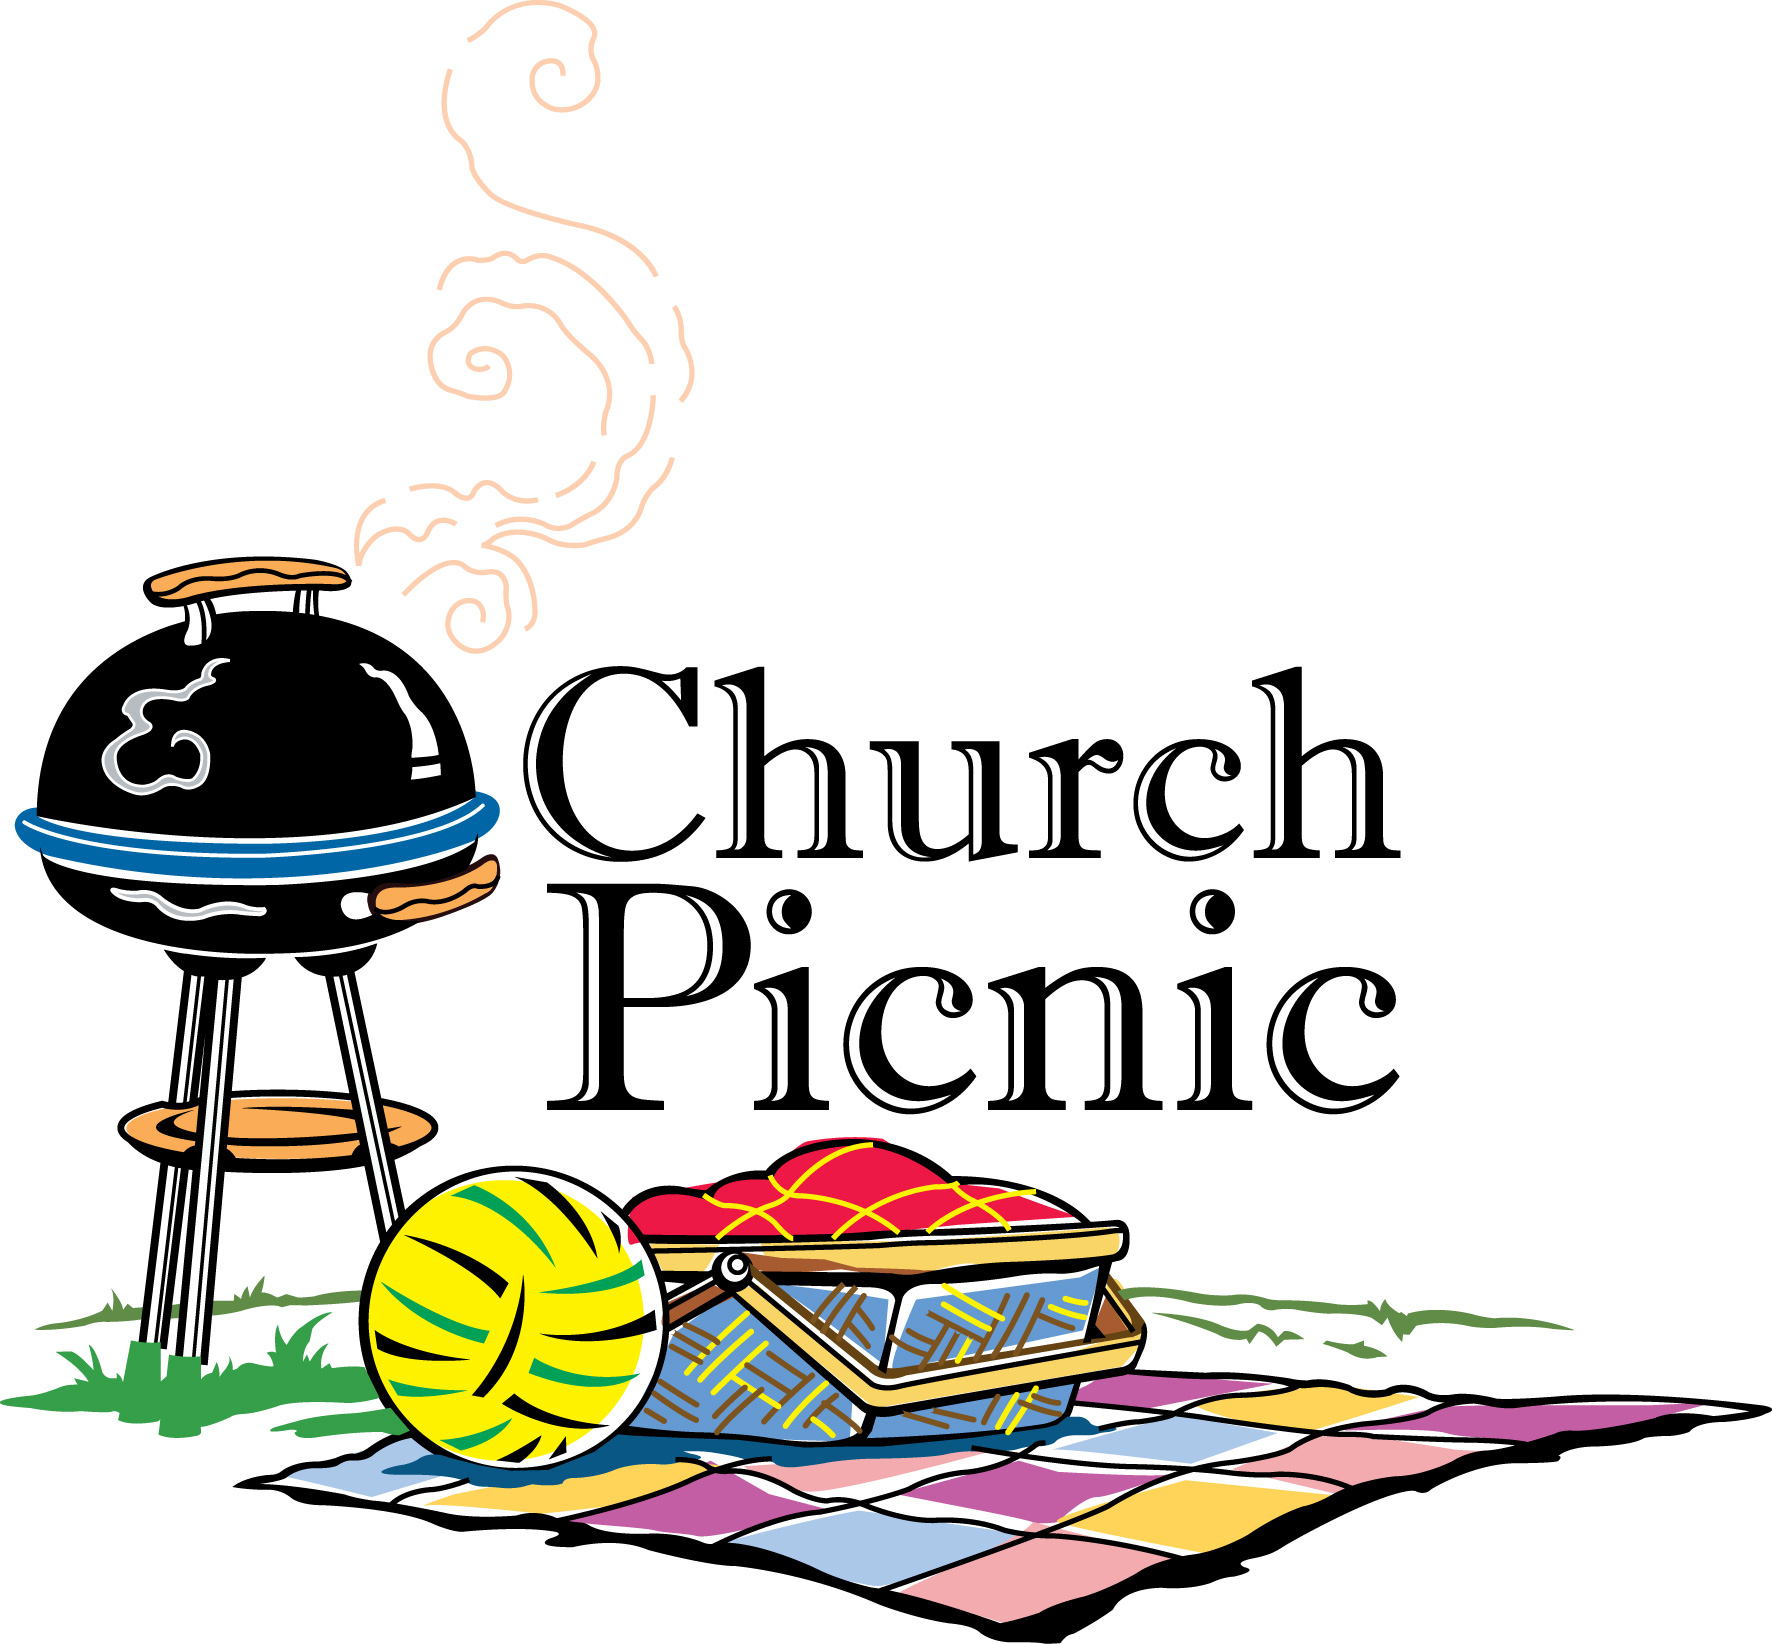 spring picnic clipart - photo #10